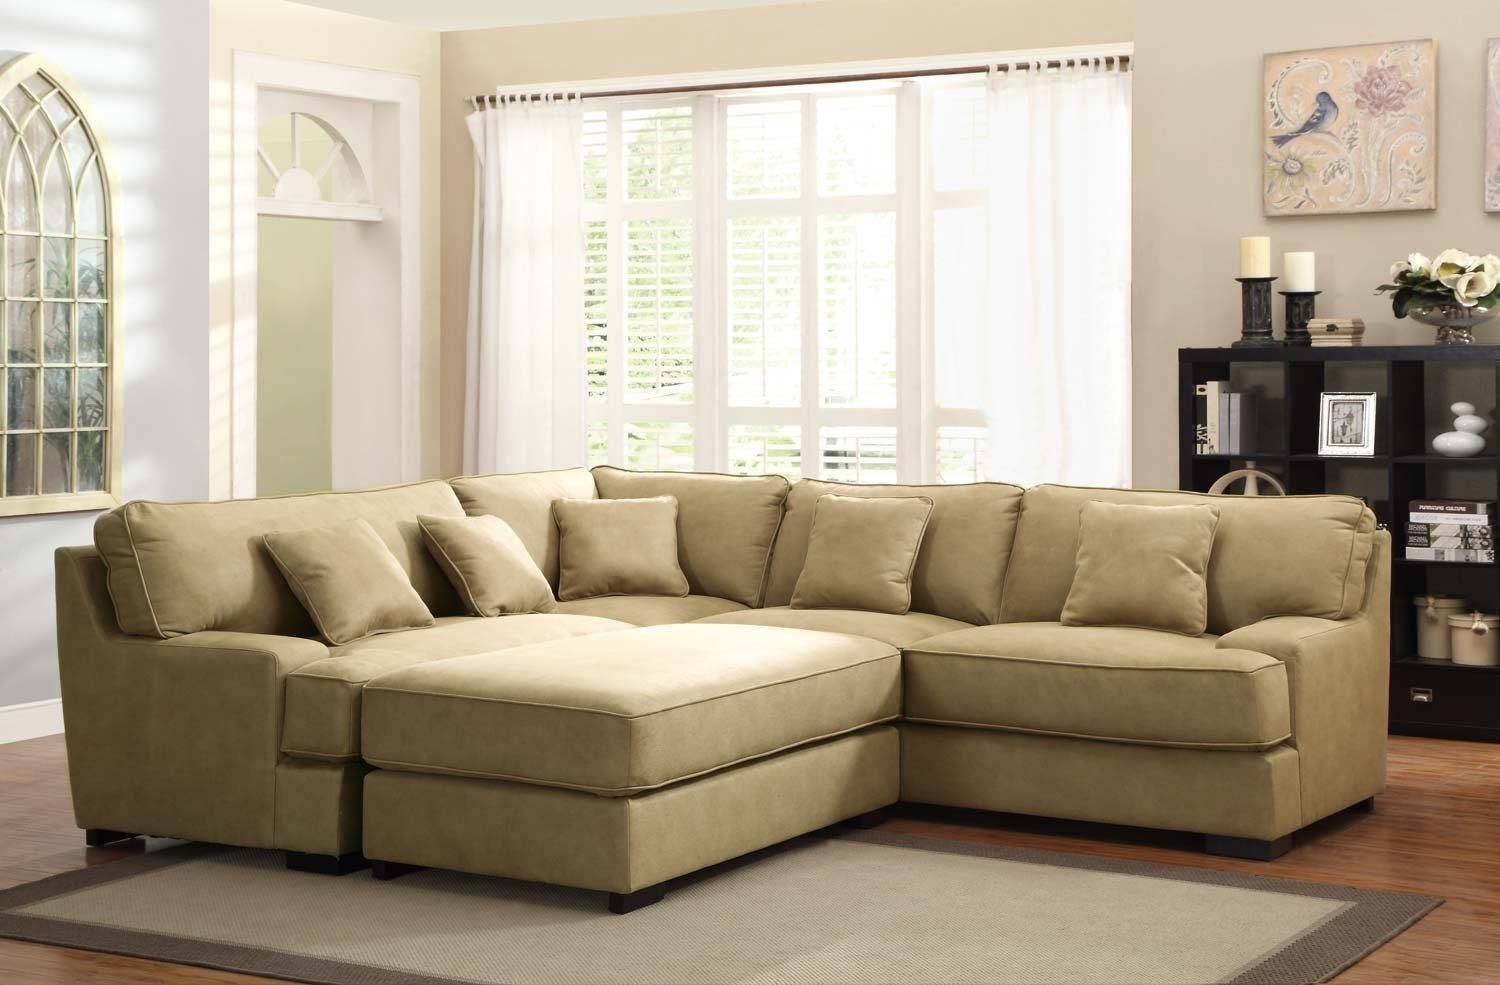 Sofas Center : Traditional Sectional Sofas Beautiful Photos regarding Traditional Sectional Sofas (Image 15 of 25)